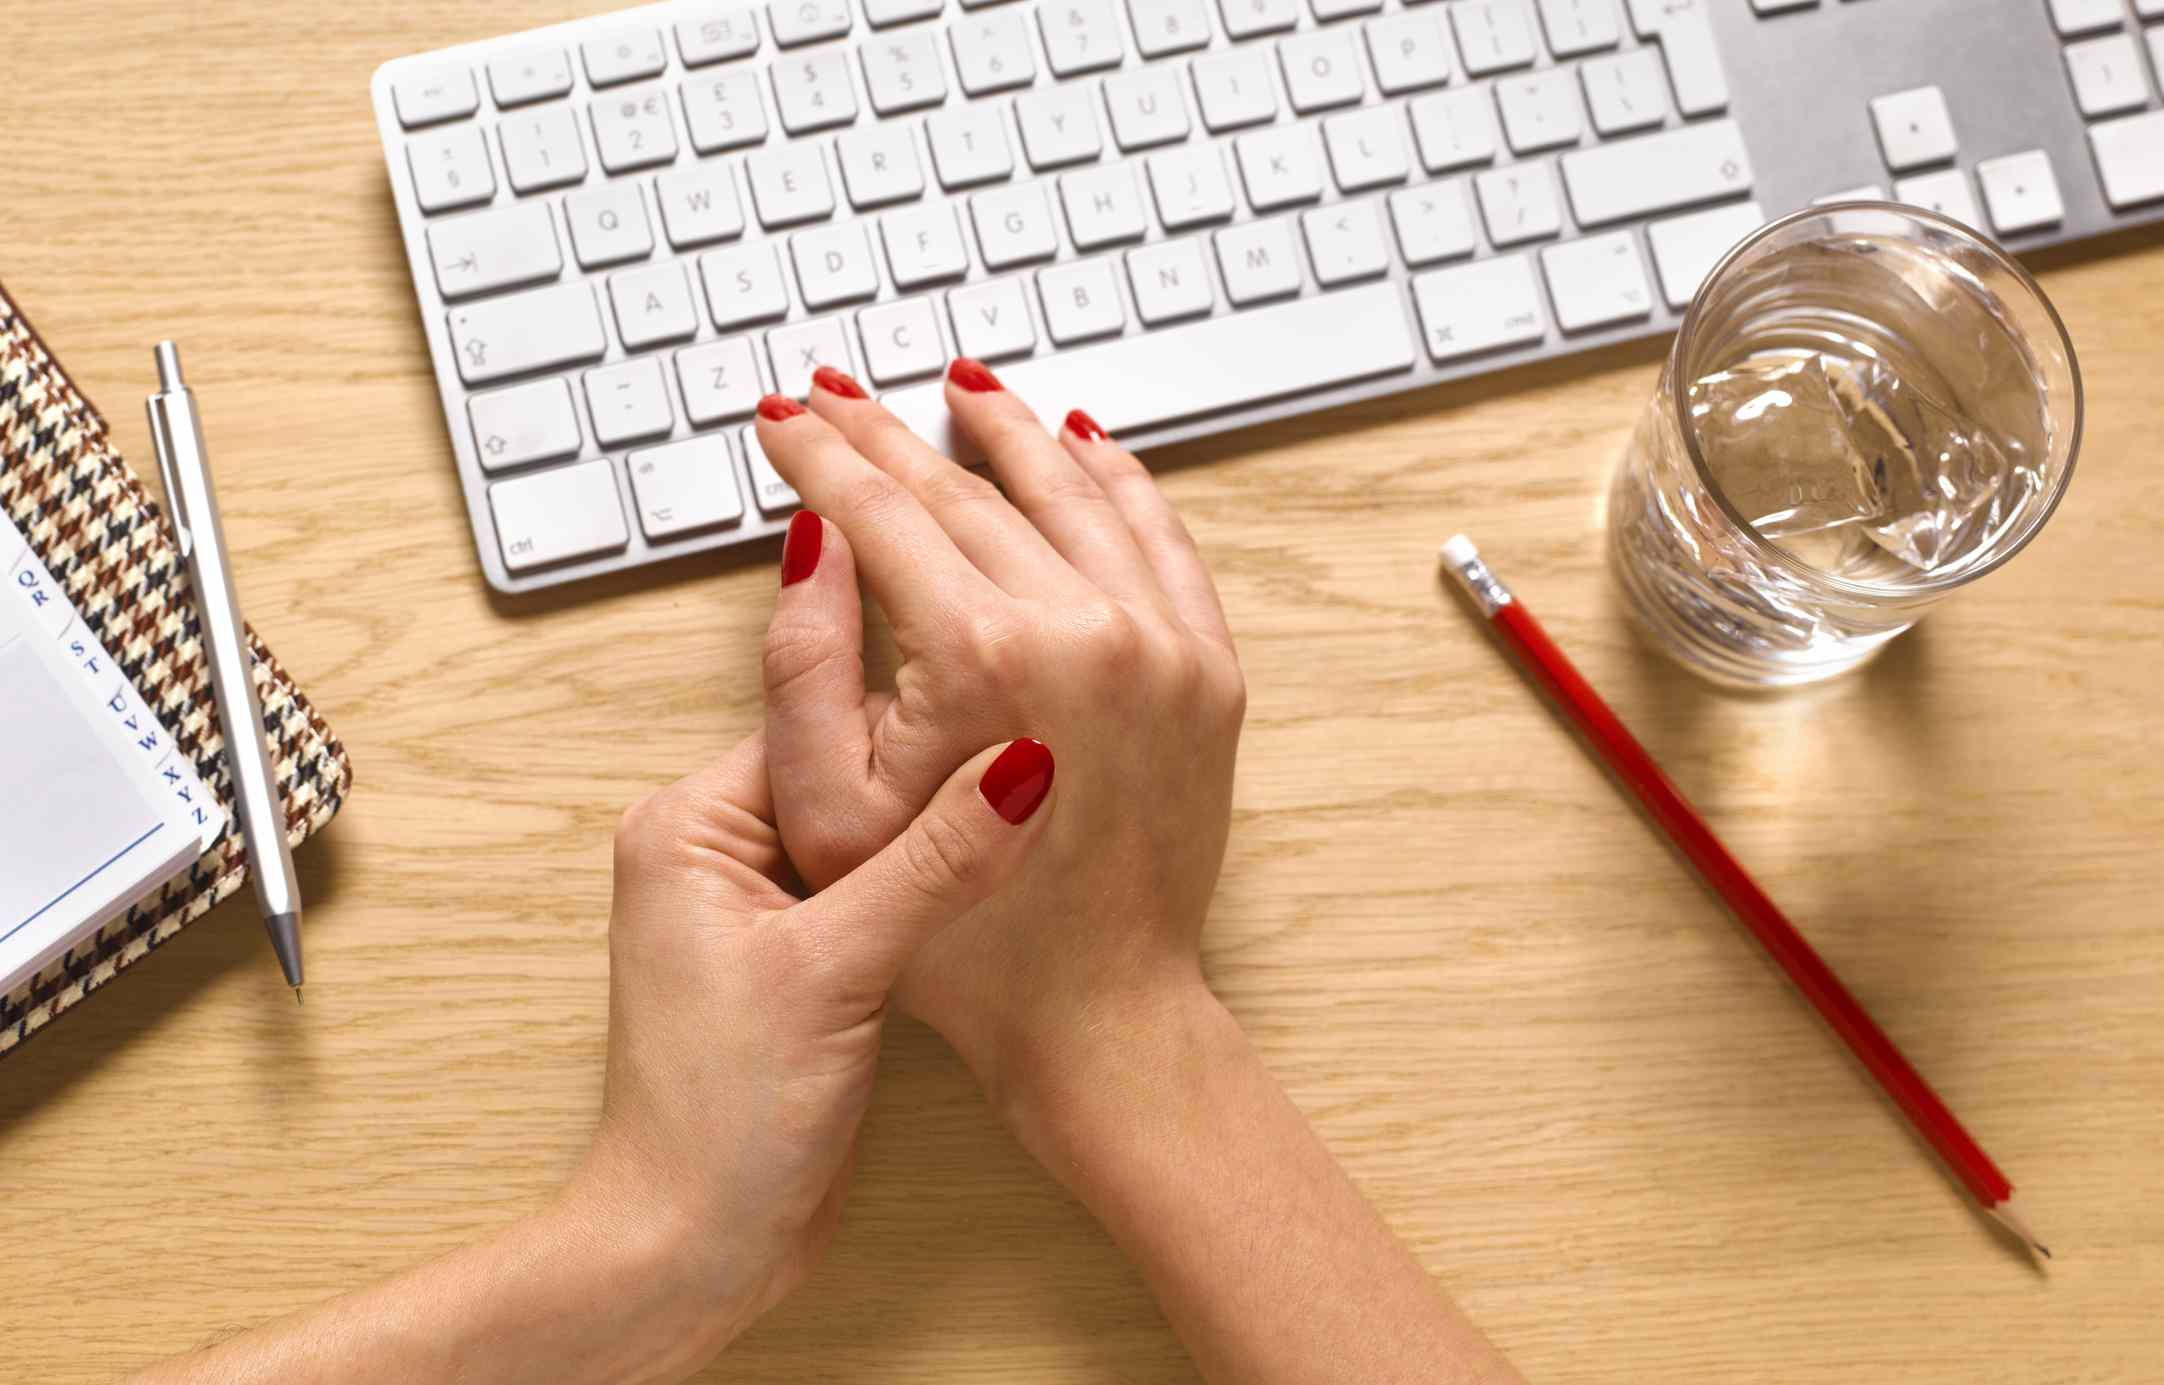 A woman is using her left hand to rub her right hand between the thumb and index finger. Next to her hands is a glass of water, a pencil, and keyboard.